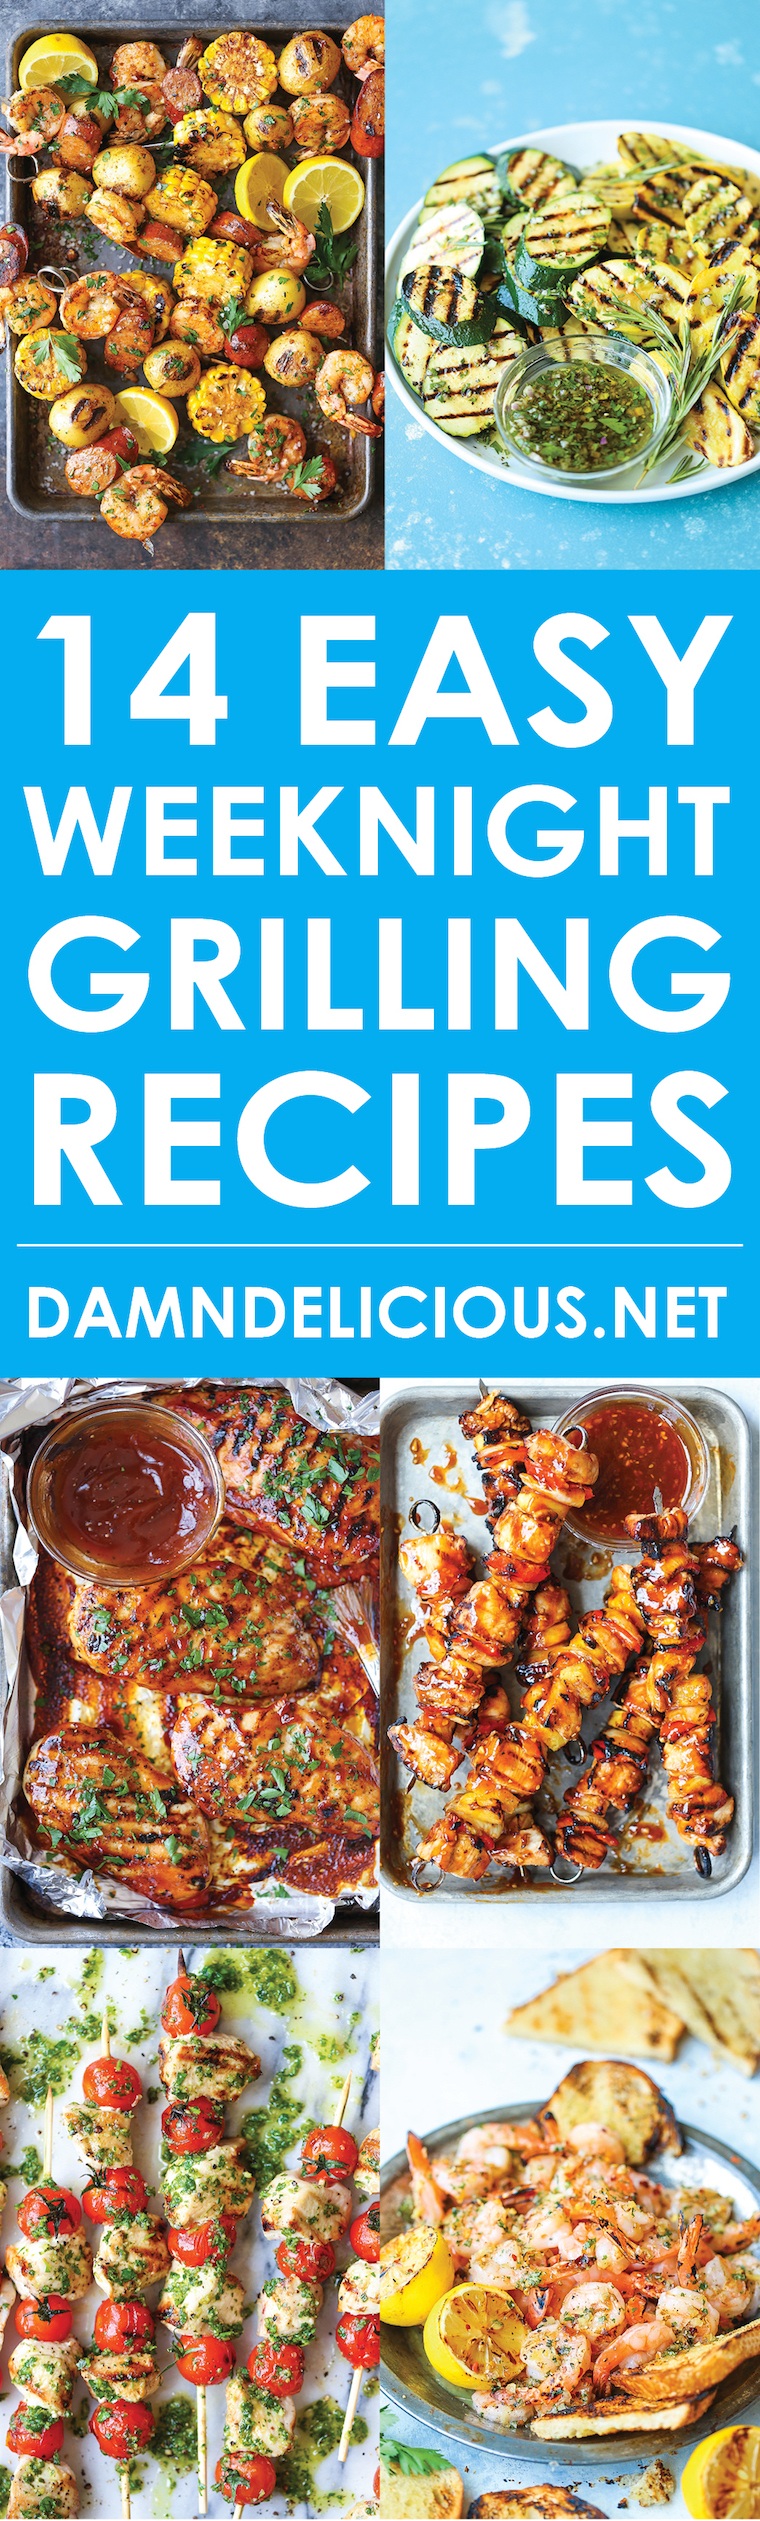 14 Easy Weeknight Grilling Recipes - It's time to fire up the grill for the easiest/quickest recipes EVER! You'll want to use the grill every single night!